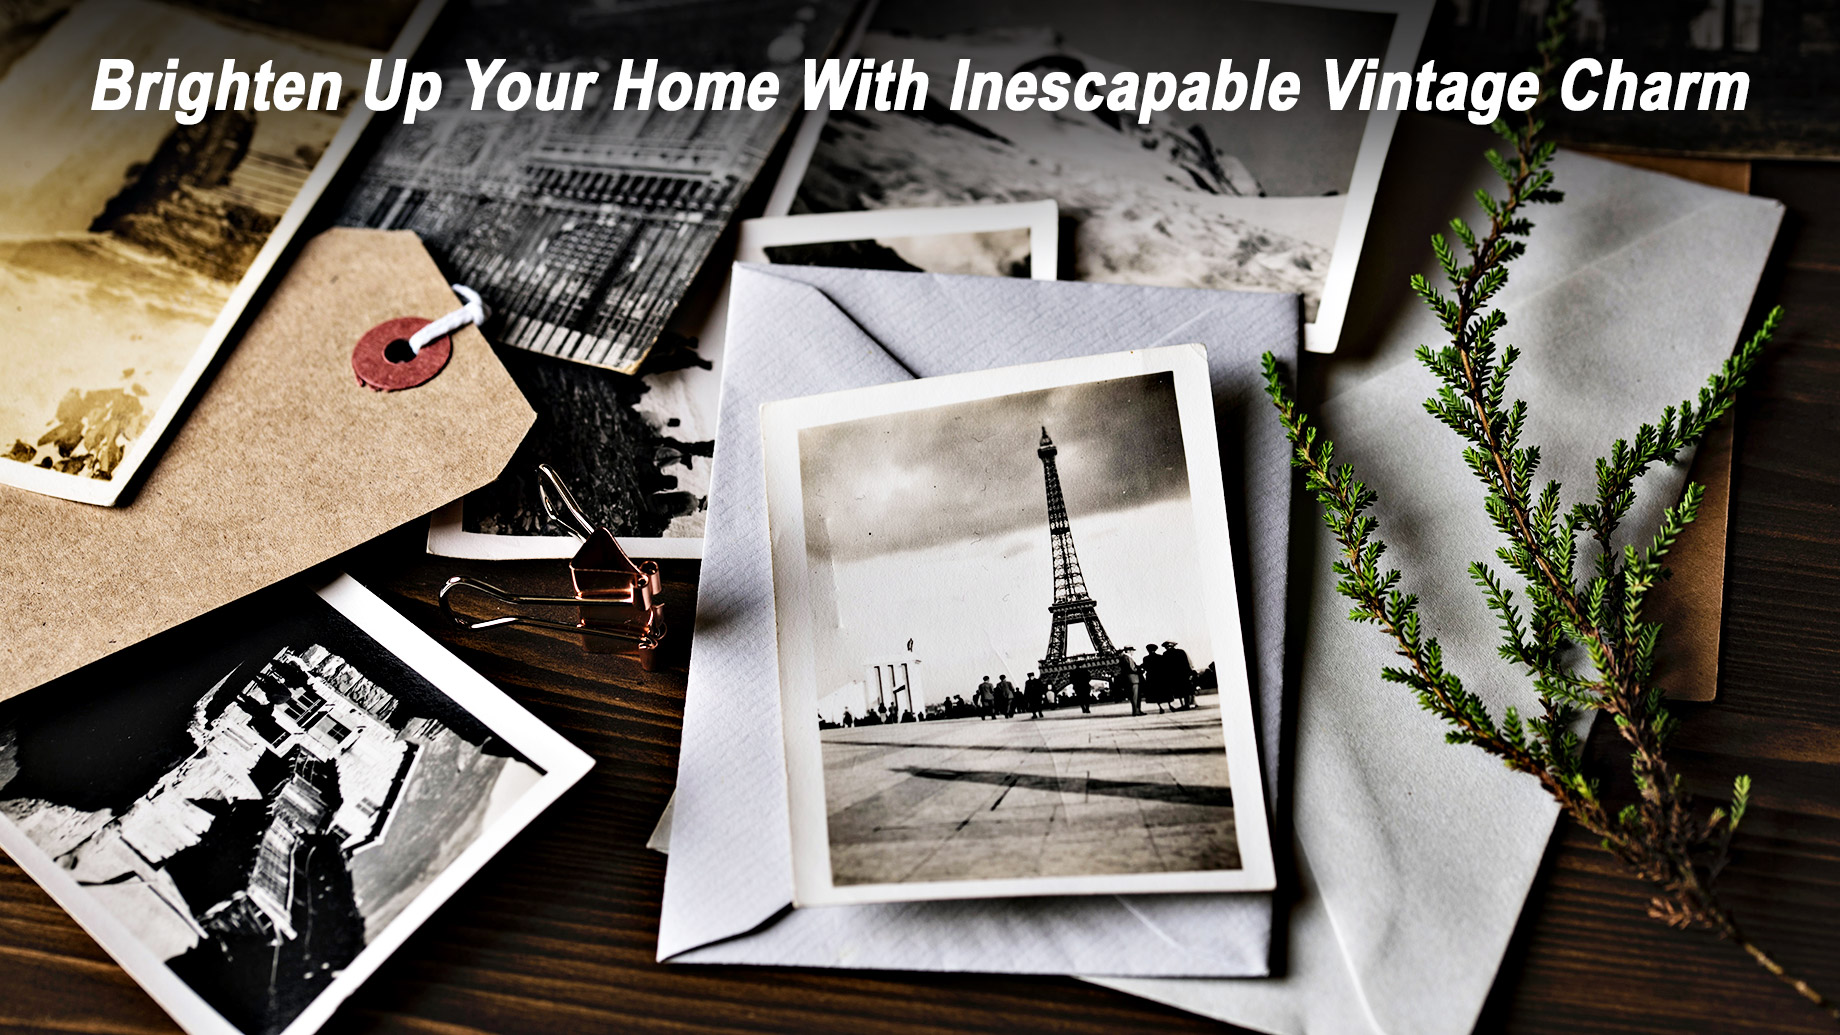 Brighten Up Your Home With Inescapable Vintage Charm